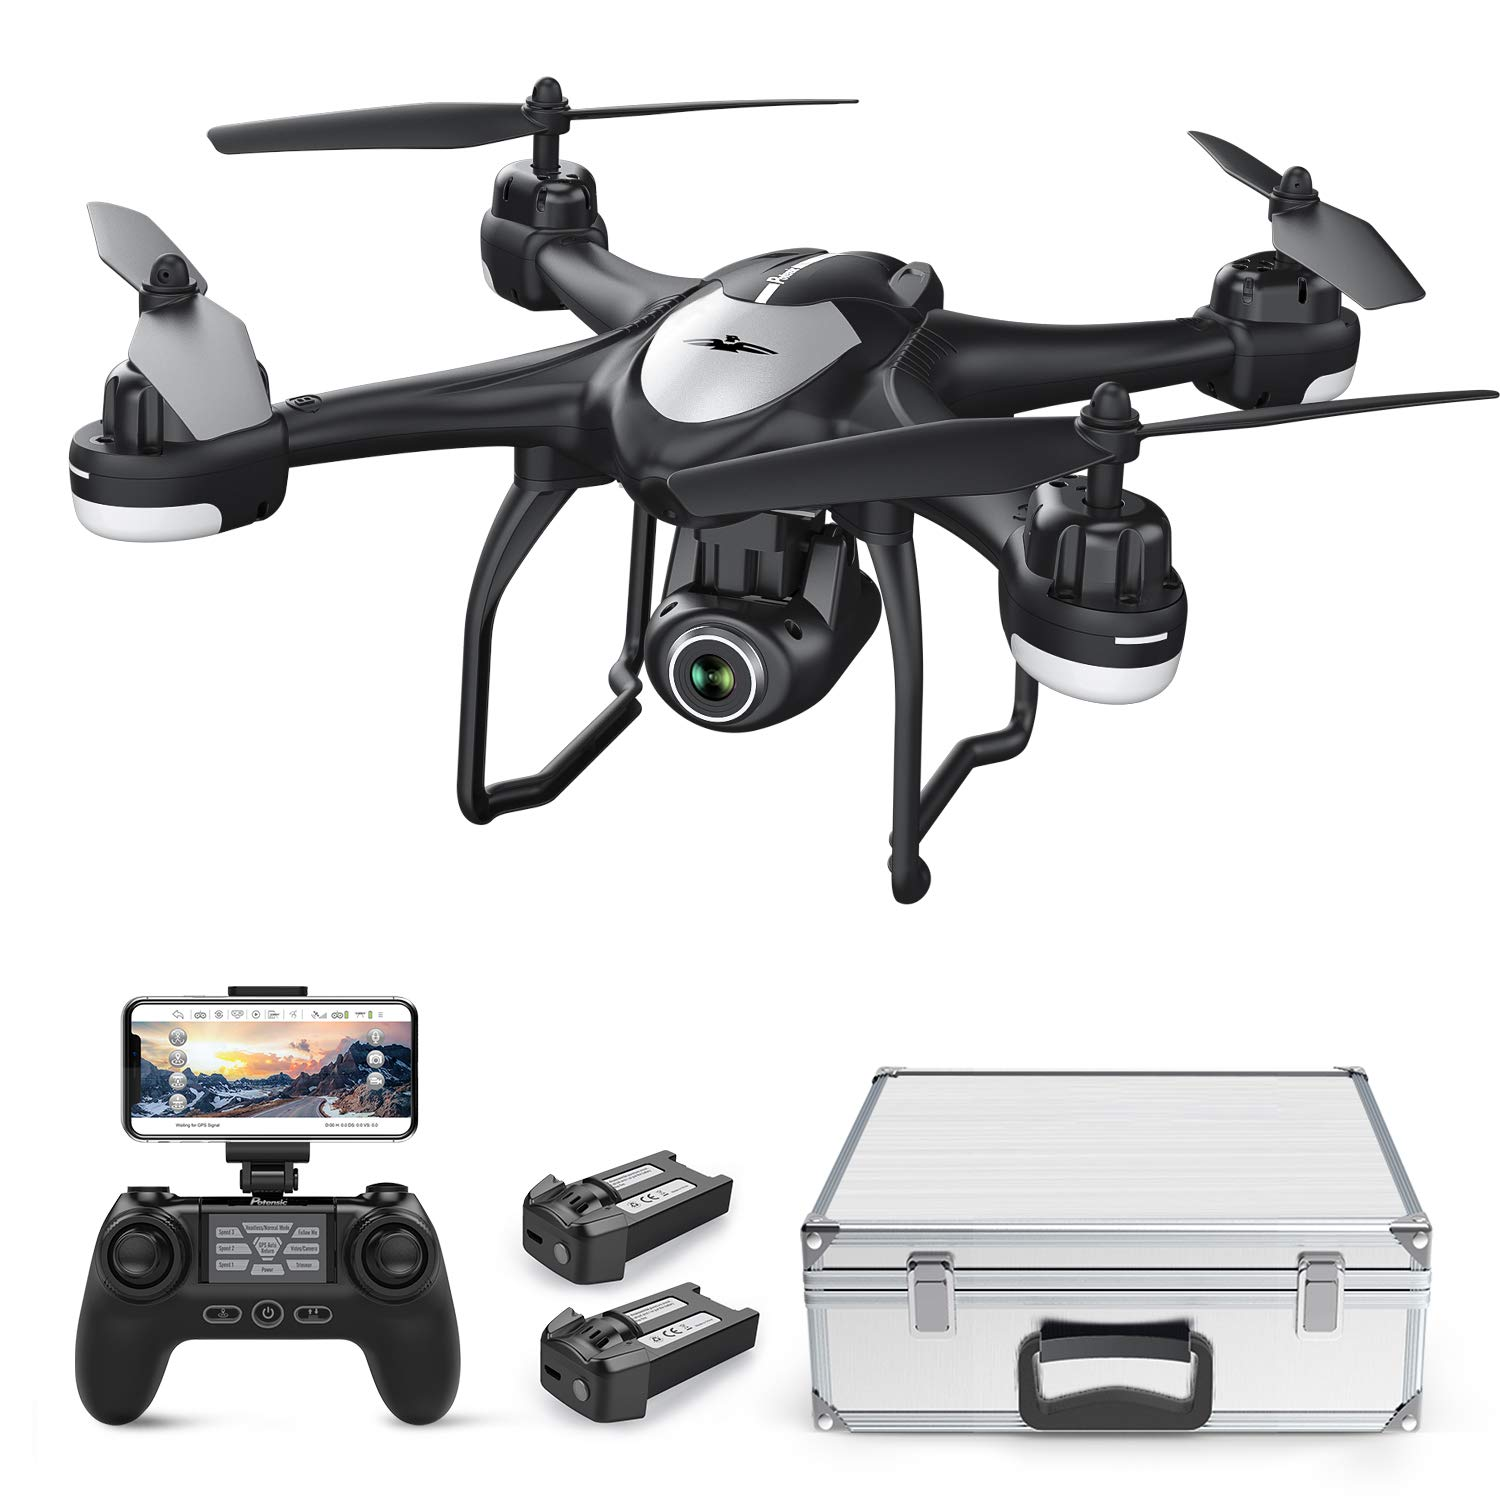 Potensic T18 Camera Drone, FPV RC Quadcotper with 1080P HD Camera Live Video, GPS Auto Return Home, Altitude Hold, Follow Me, 2 Batteries and Aluminum Carrying Case review